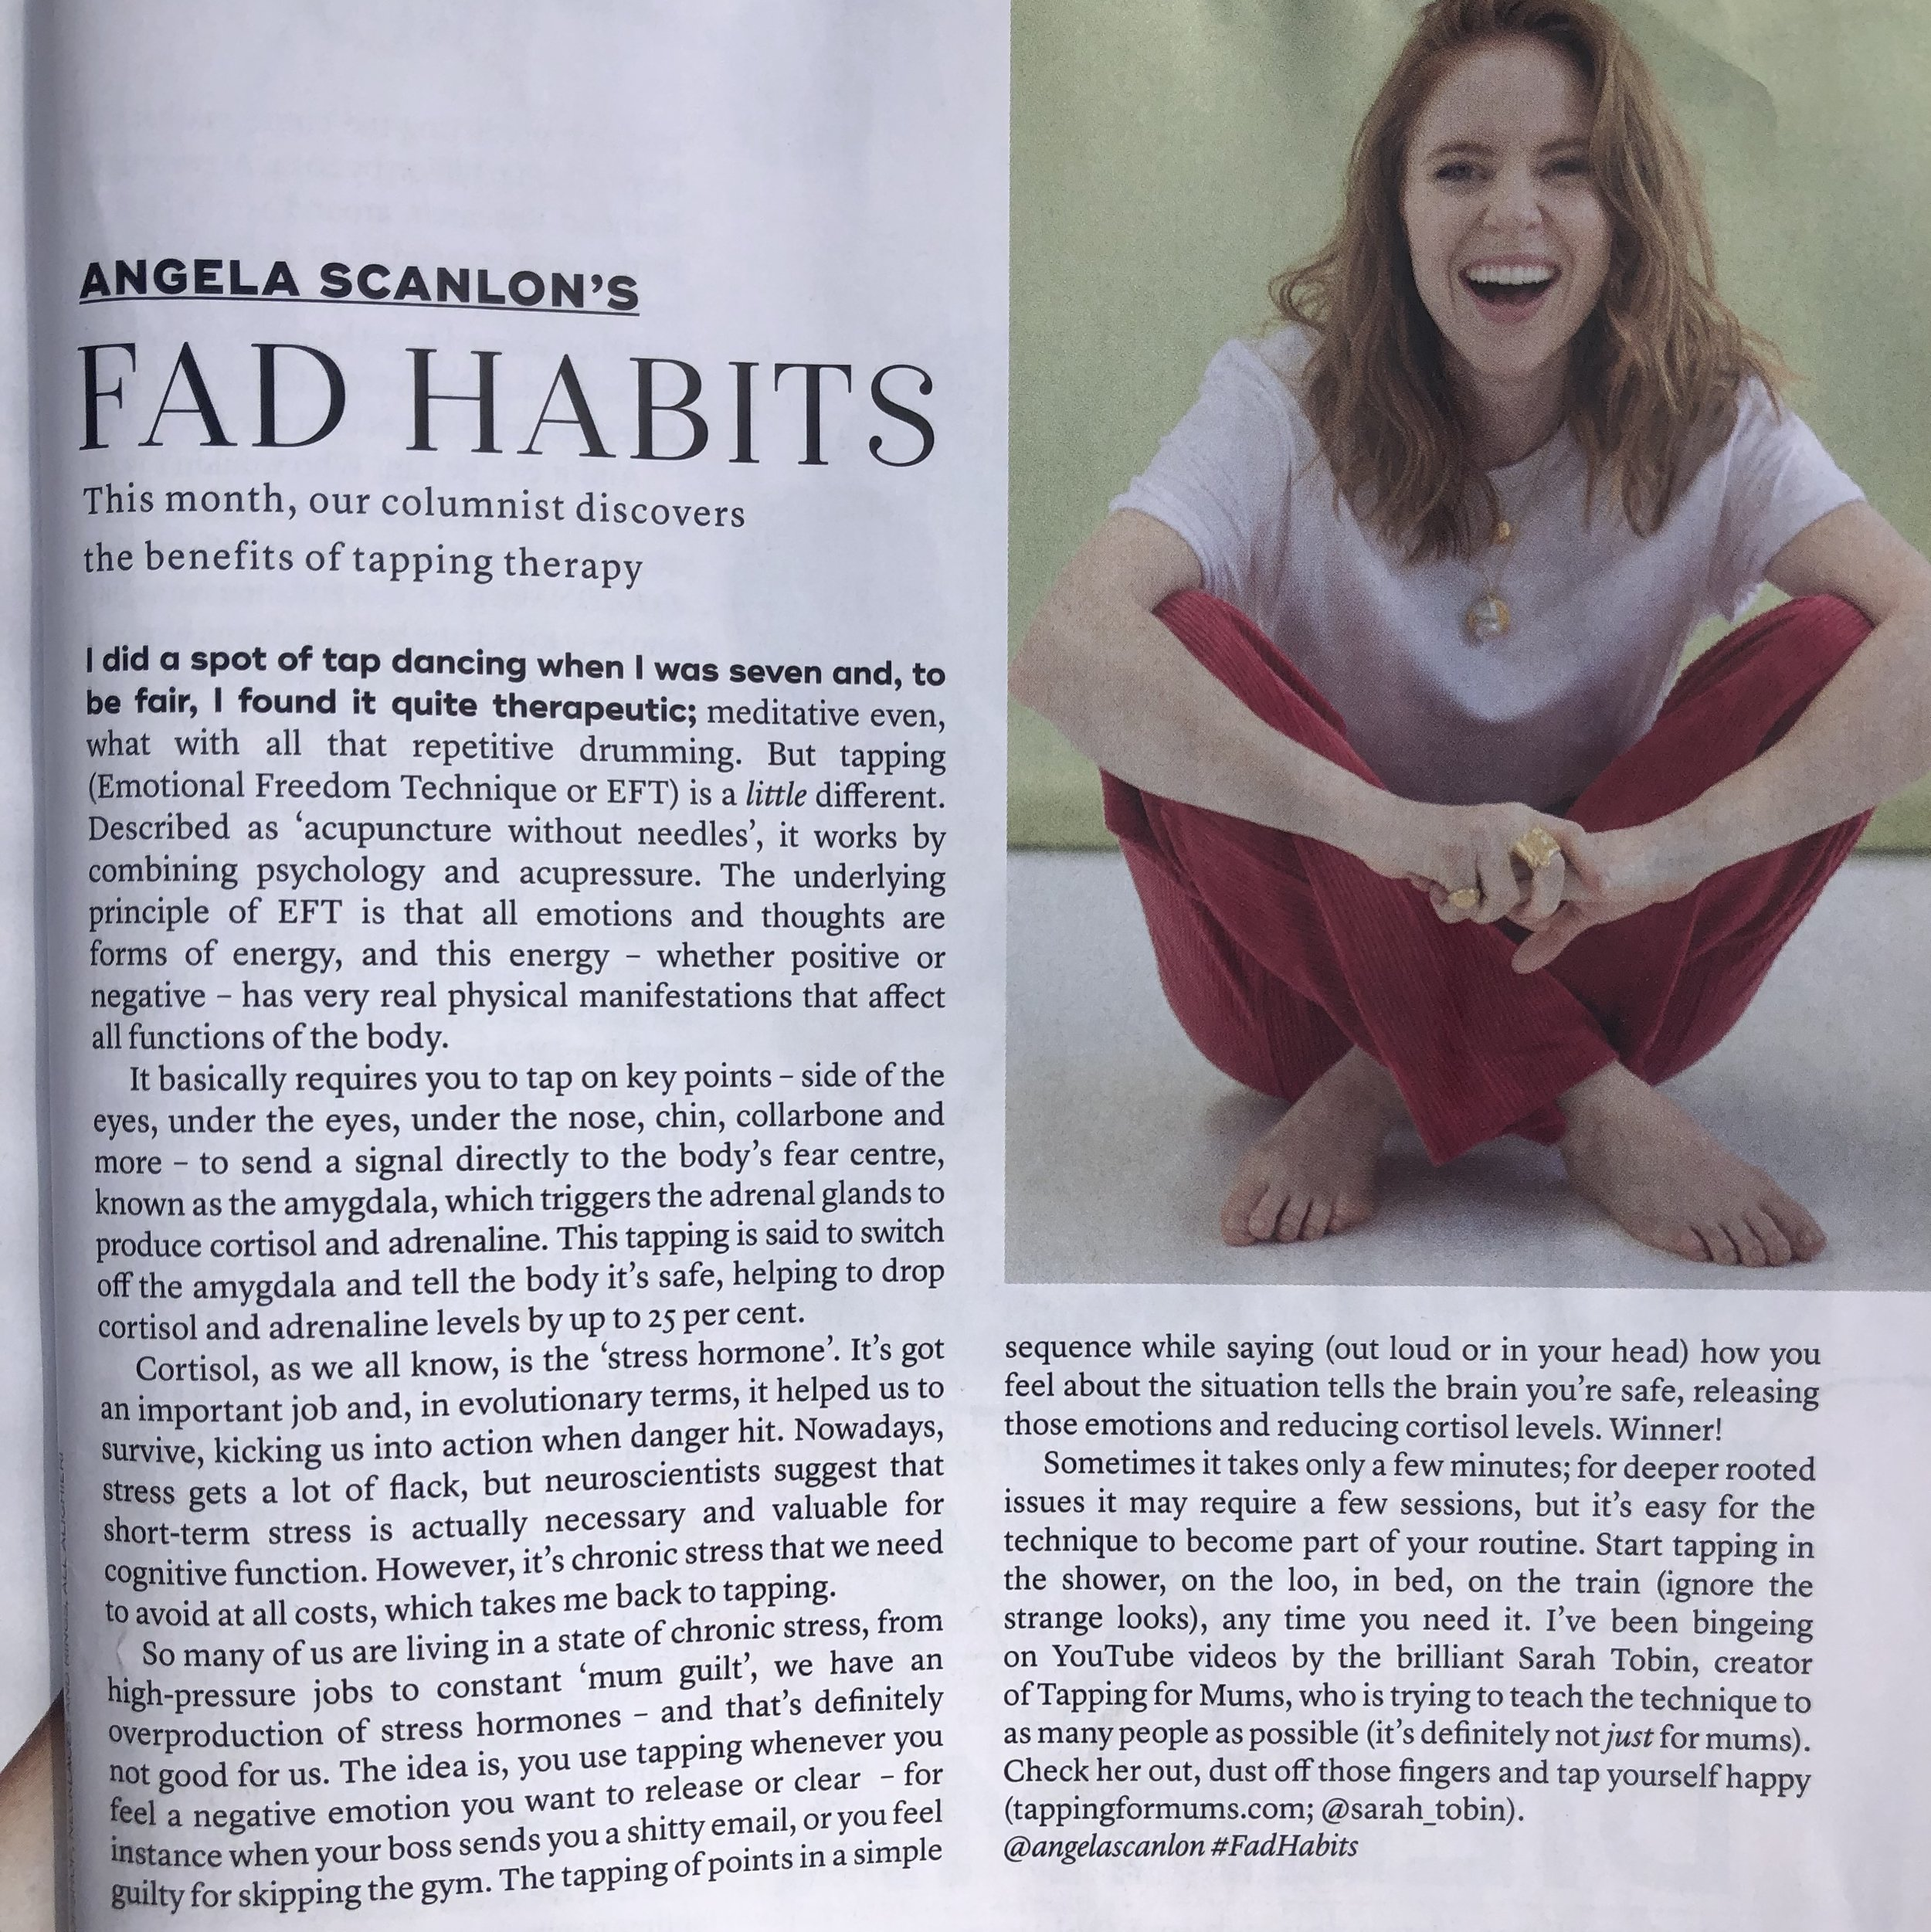 Angela Scanlon Column, Marie Claire, May 2019